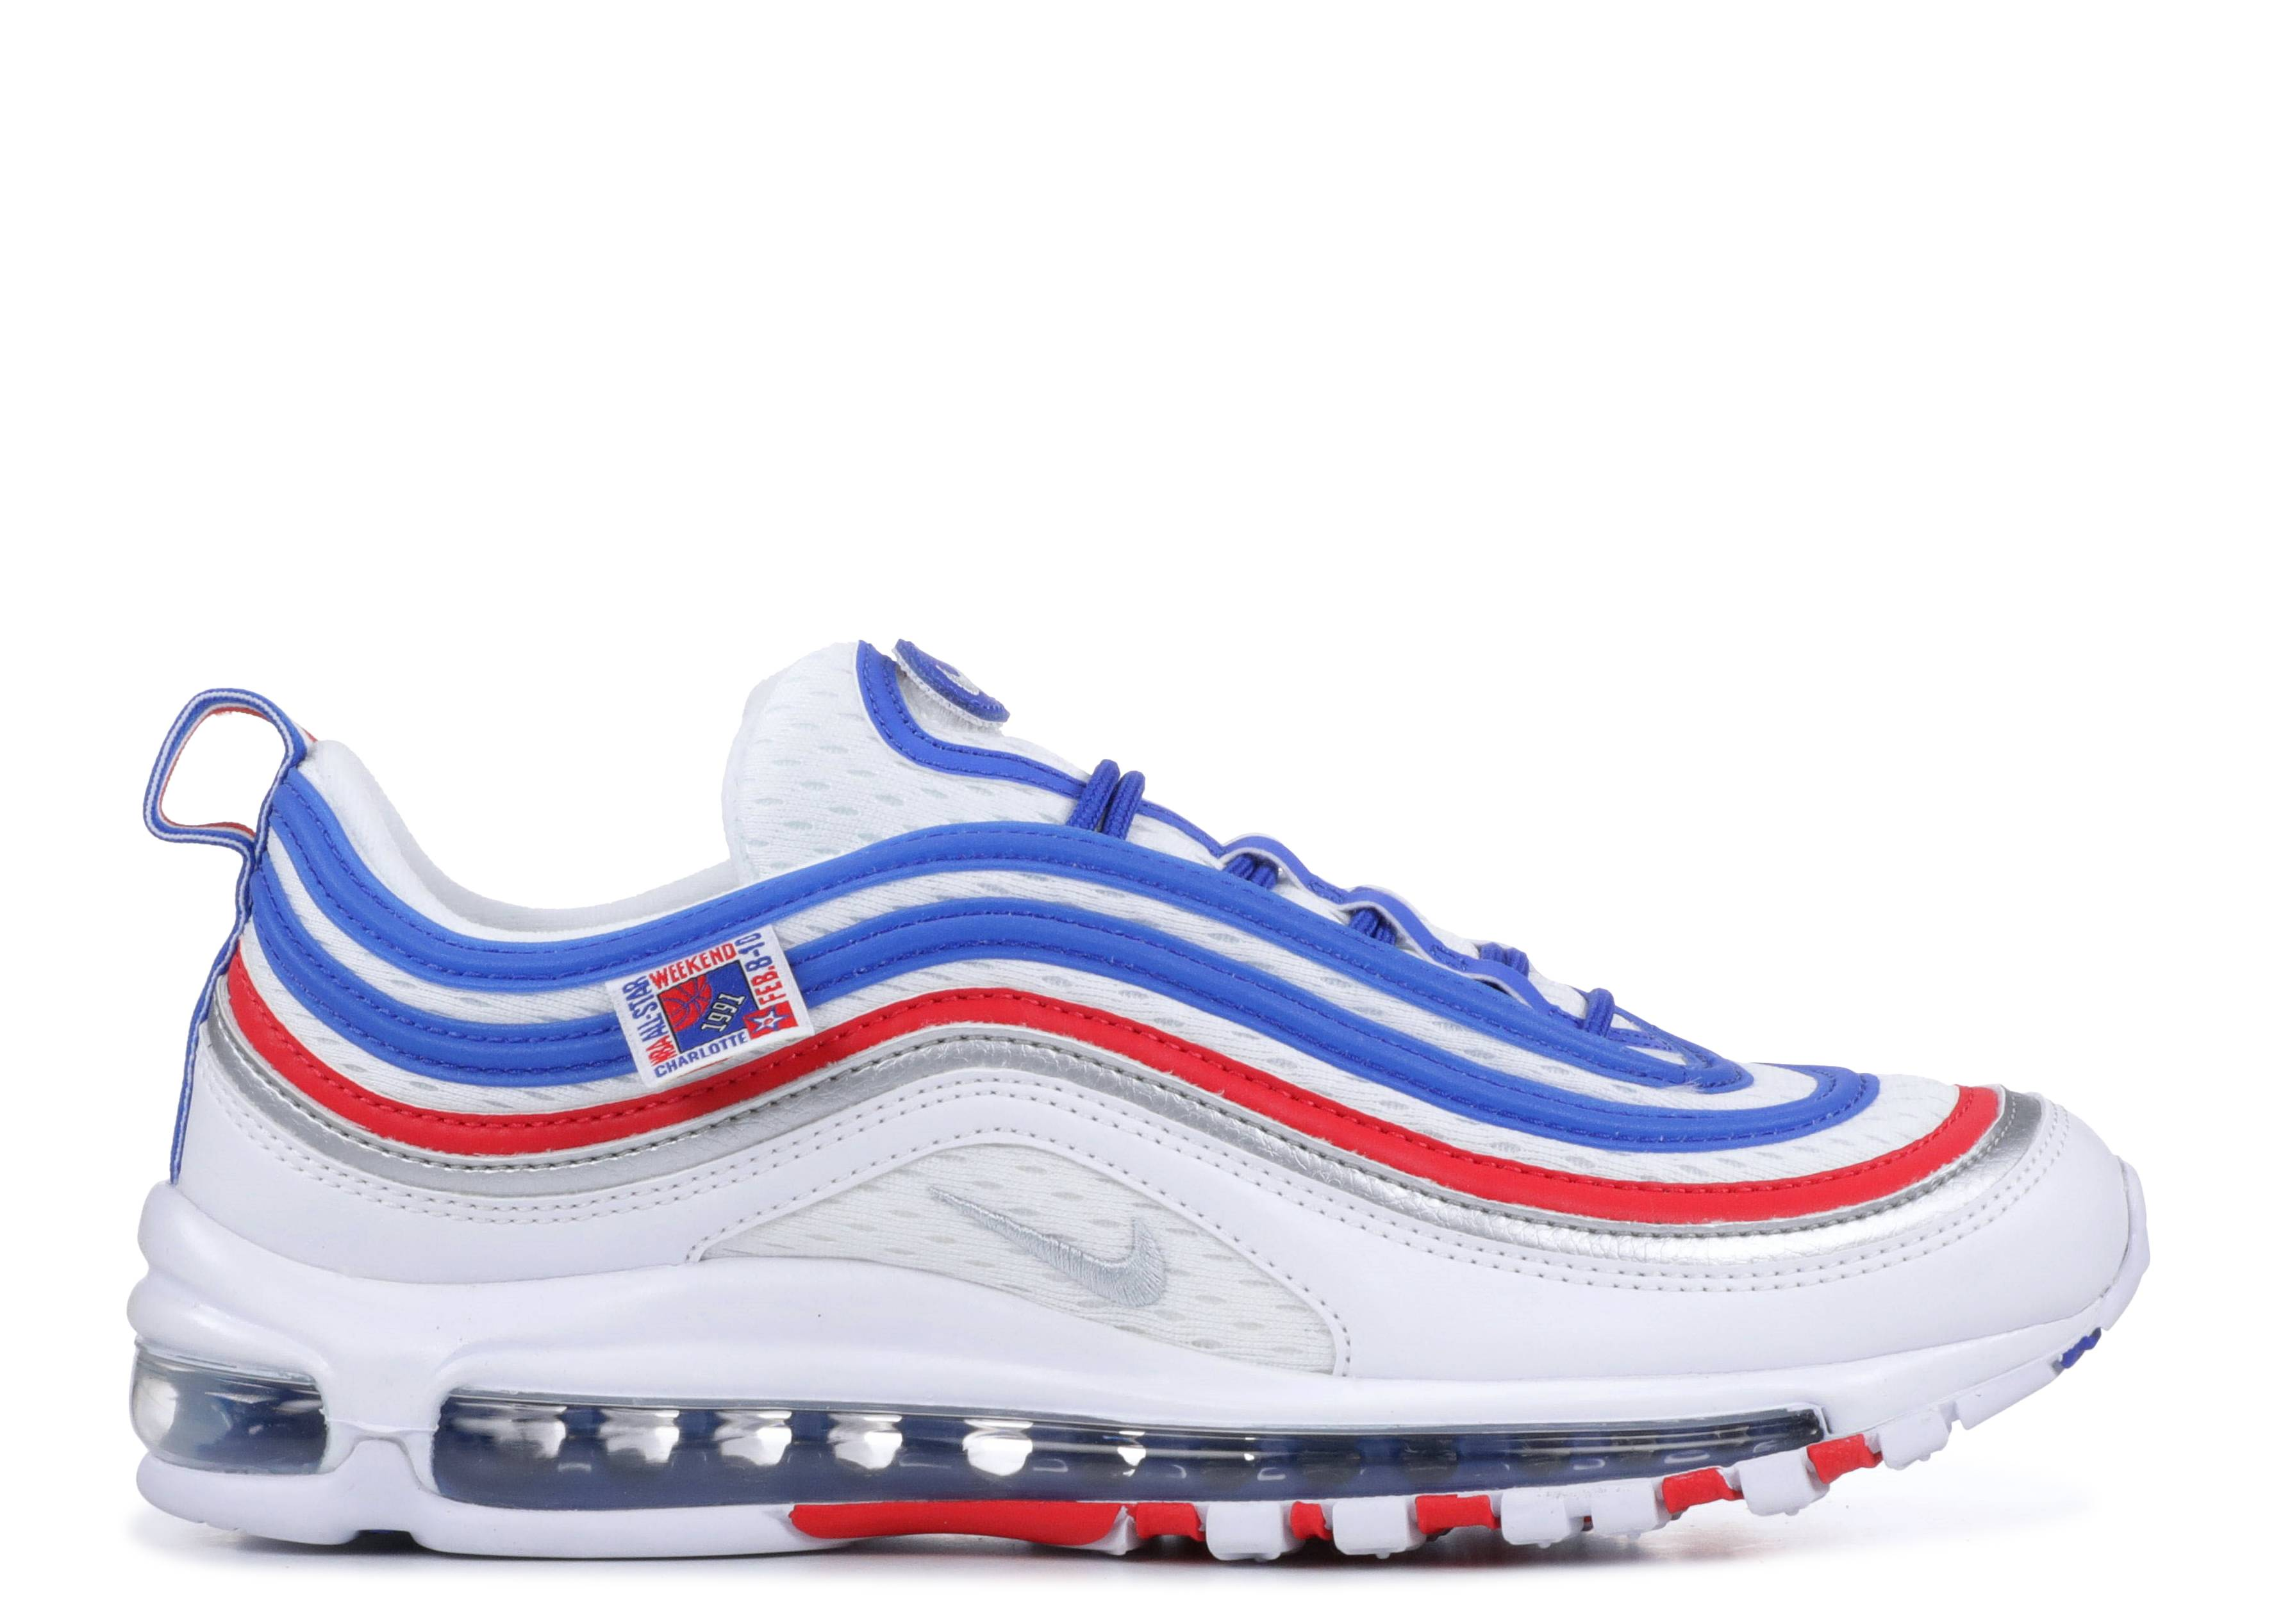 competitive price 42b33 e03f2 Nike Air Max 97 - Men s   Women s Shoes   Flight Club